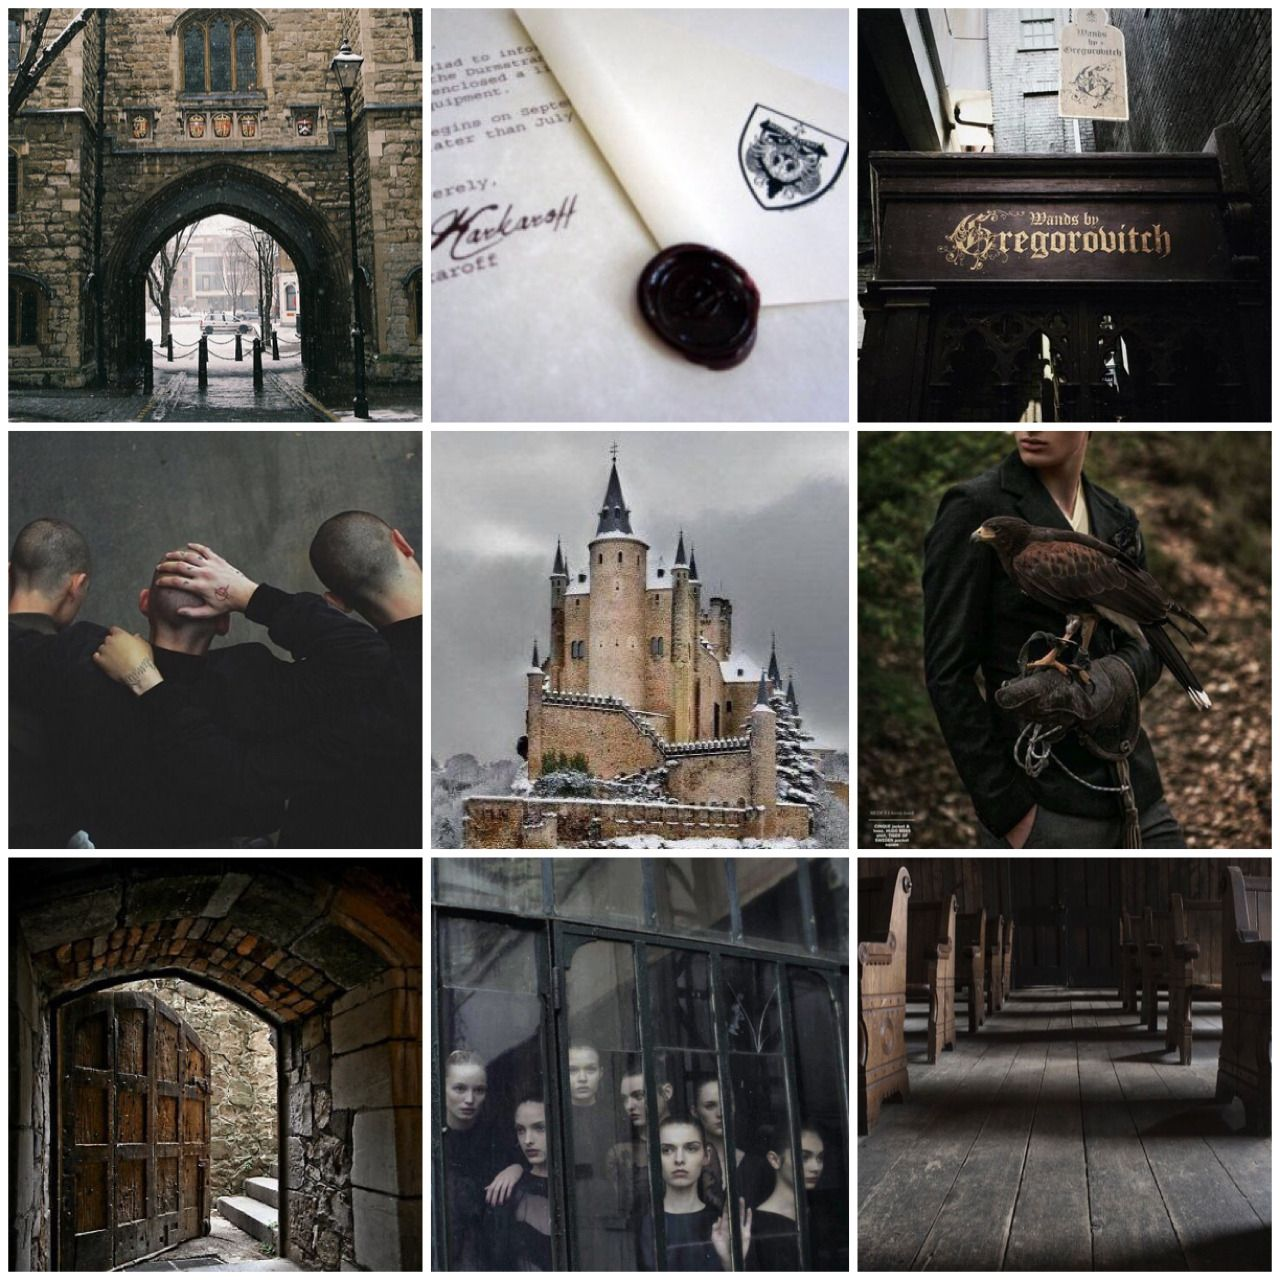 Wizarding Schools Around The World Durmstrang Institute Schools Around The World Wizarding World Big Book Myhpspl.tk ten durmstrang moå¼esz zobaczyä na serwerze harry potter. wizarding schools around the world